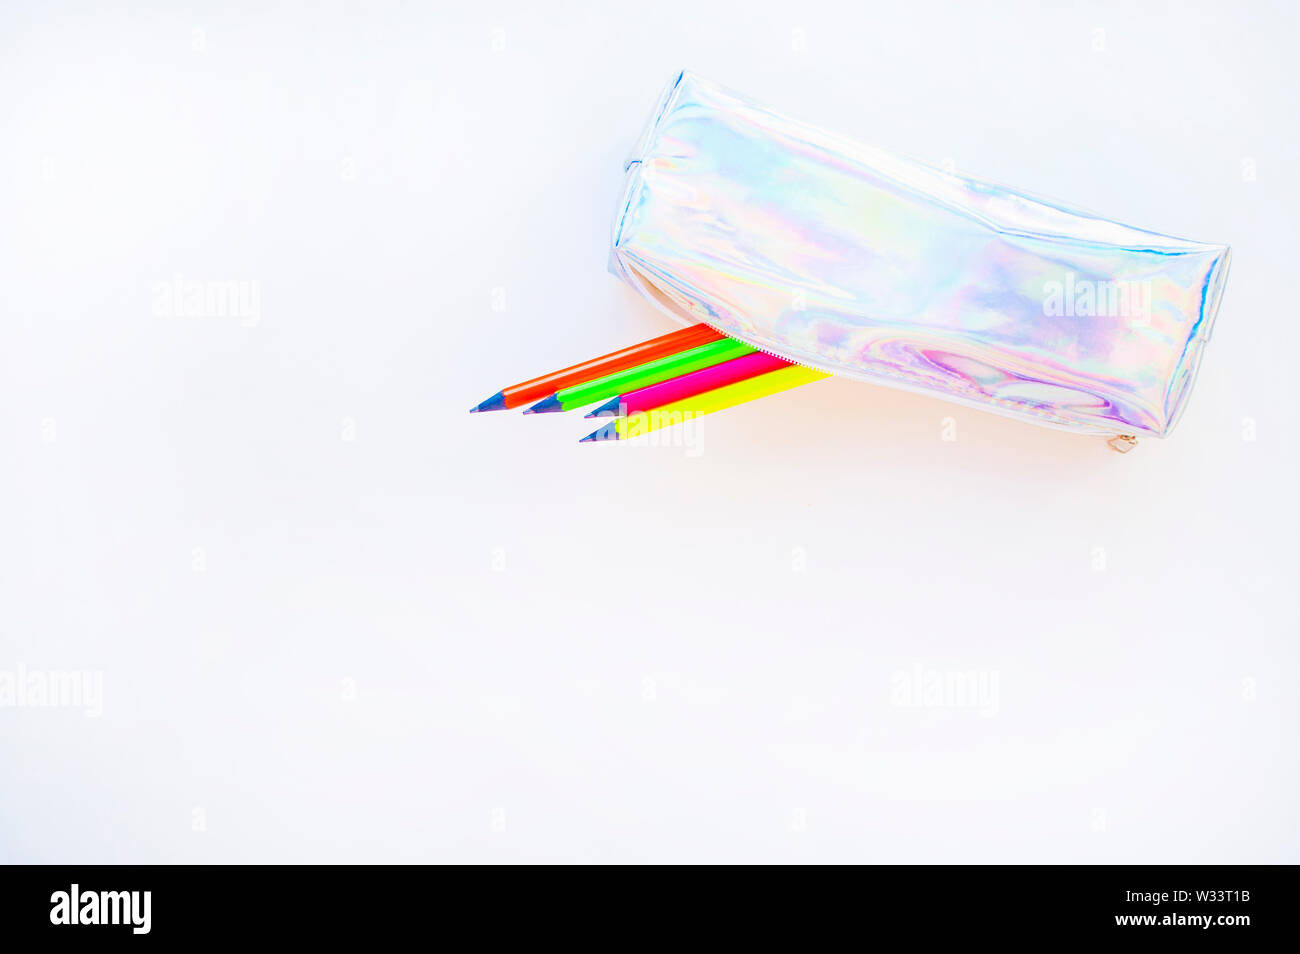 Colorful paper, neon pencils and holographic pencil case on beige background with copyspace. Flat lay style. Back to school concept. - Stock Image